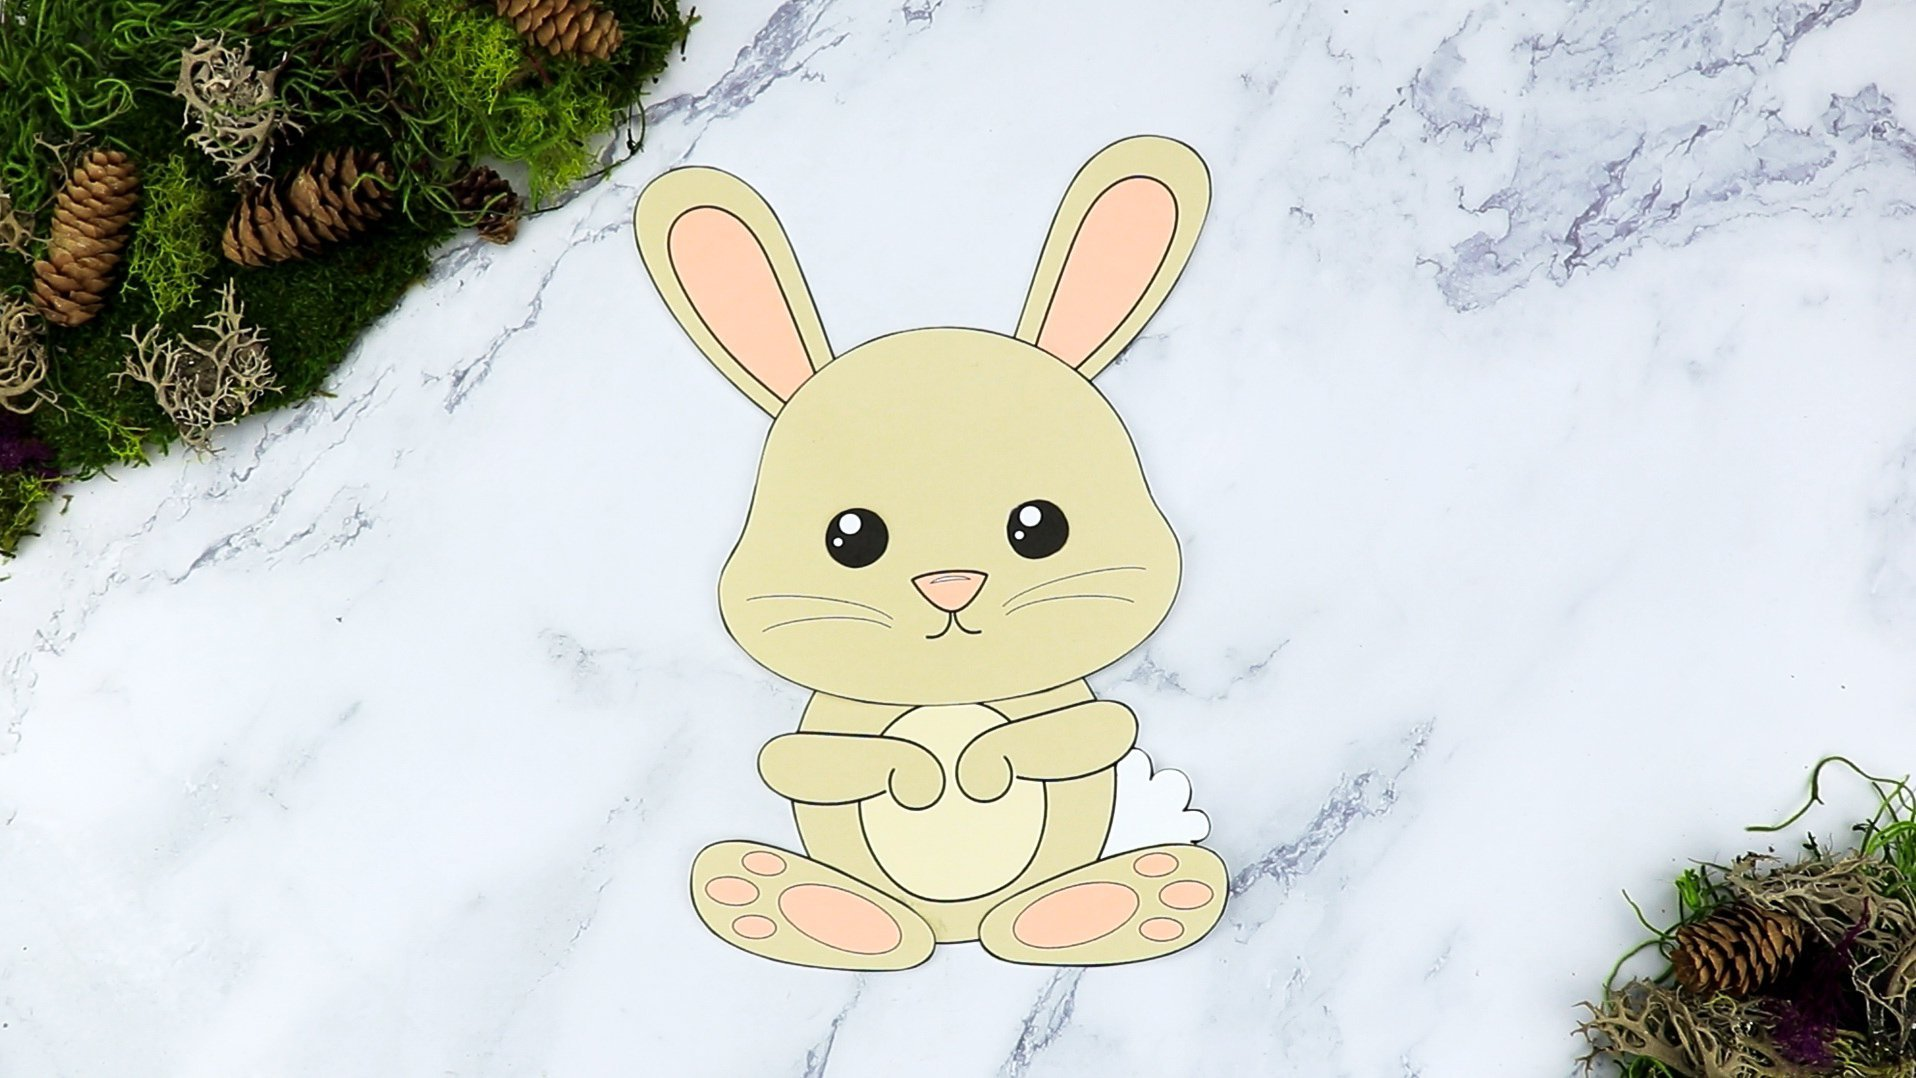 Free Printable Forest Rabbit Craft Template for kids, preschoolers, toddlers and kindergartners